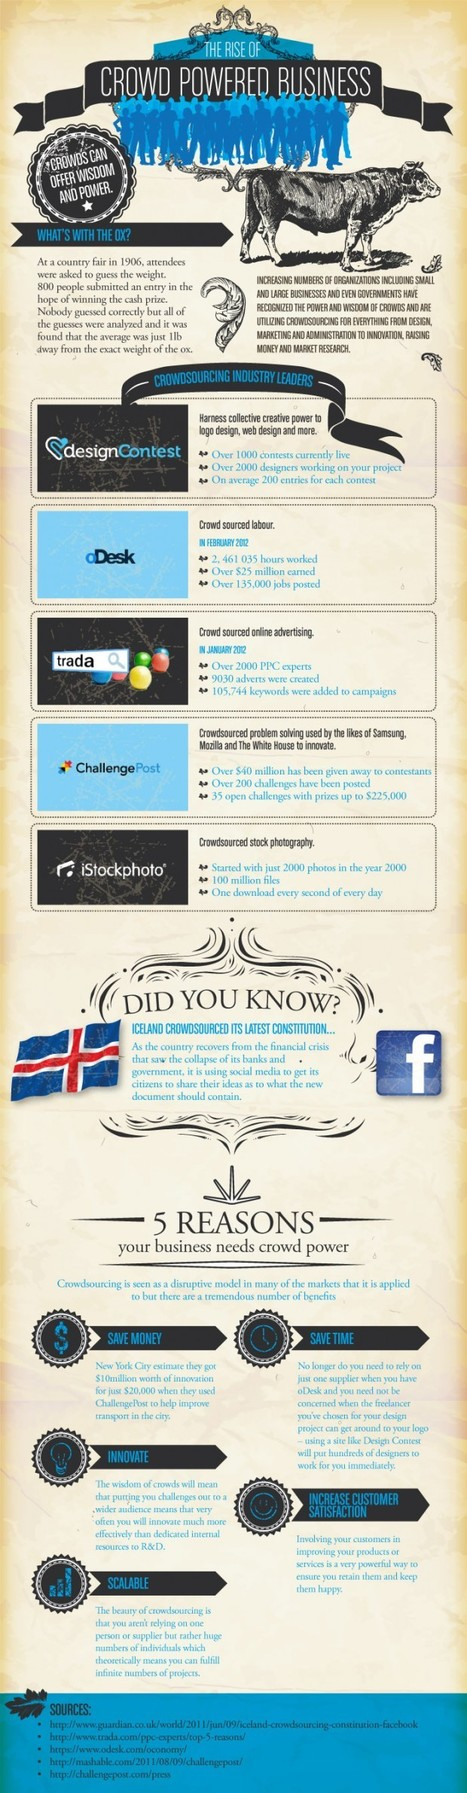 5 Ways Crowdsourcing Helps Your Business [Infographic]   Content Curation: Emerging Career   Scoop.it